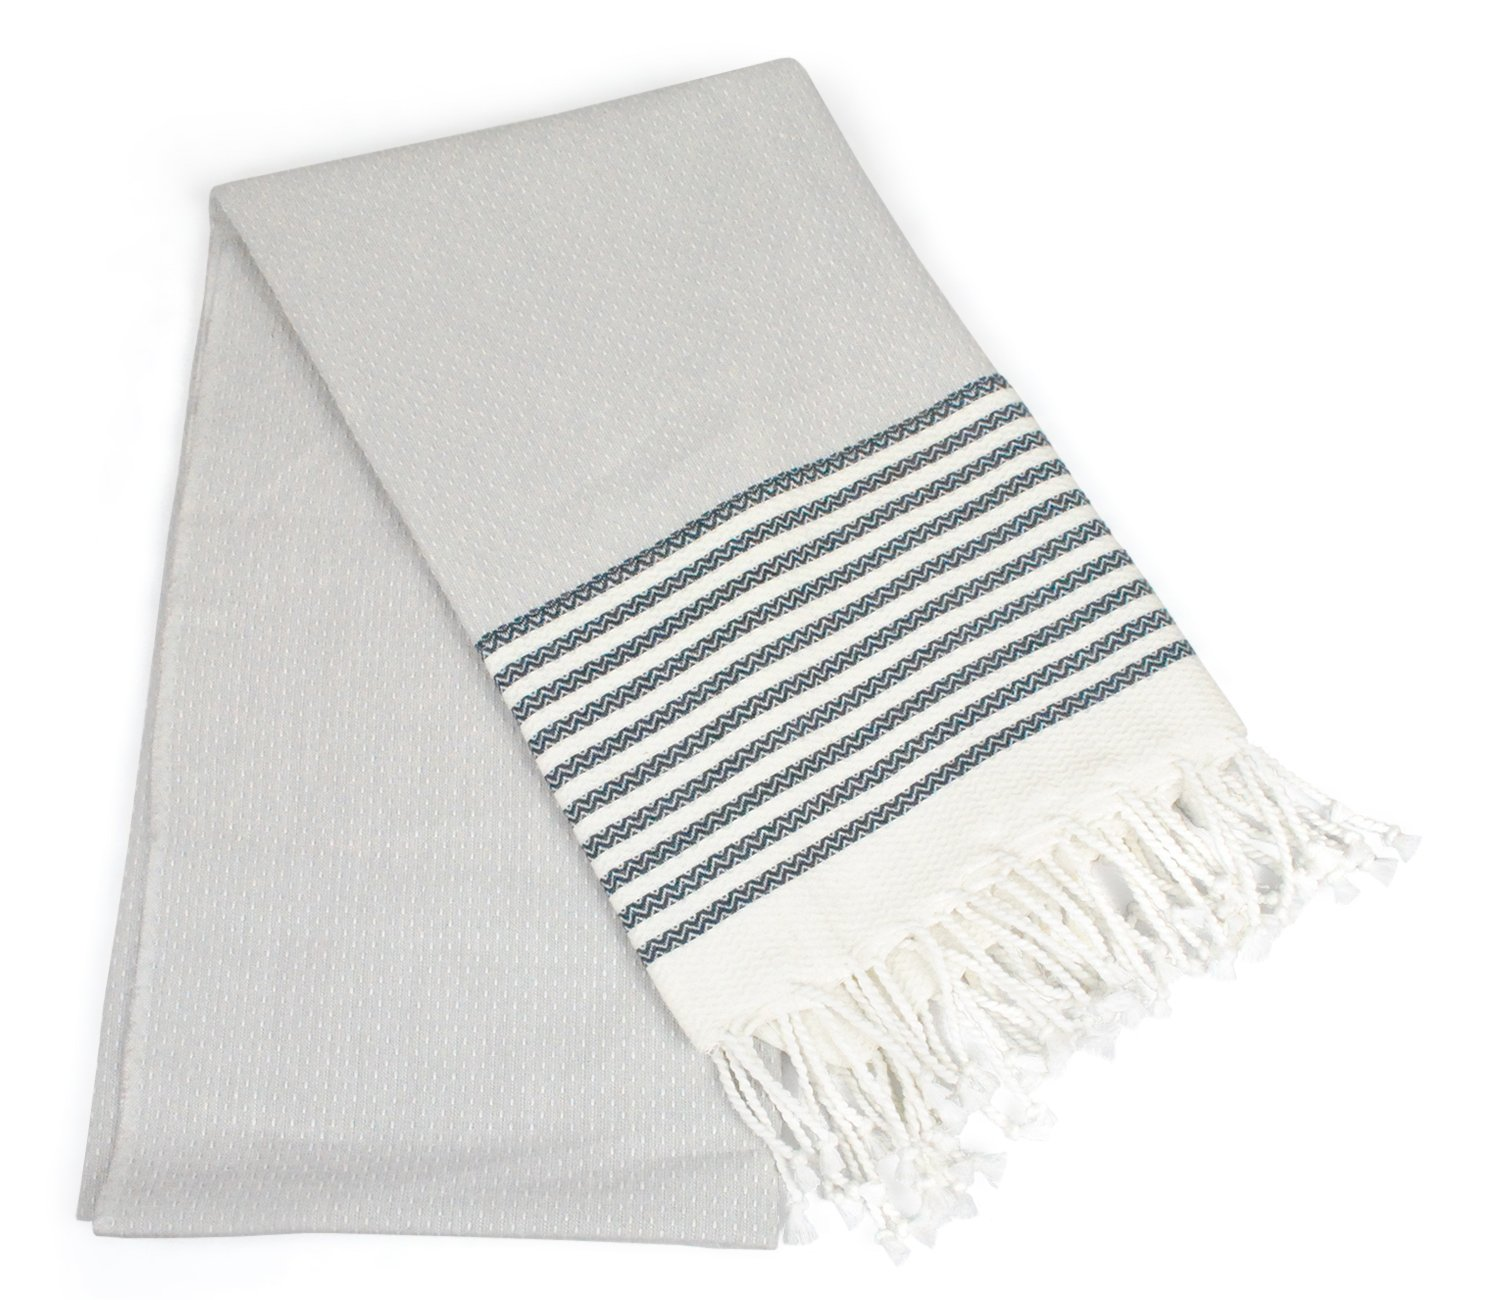 DII Peshtemal Turkish Super Soft, Absorbent, Oversized Bath Towel, Throw, & Blanket Fringe For Chair, Couch, Picnic, Camping, Beach, Yoga, Pilates, & Everyday Use , 39 x 71'' - Navy Stitched Stripe